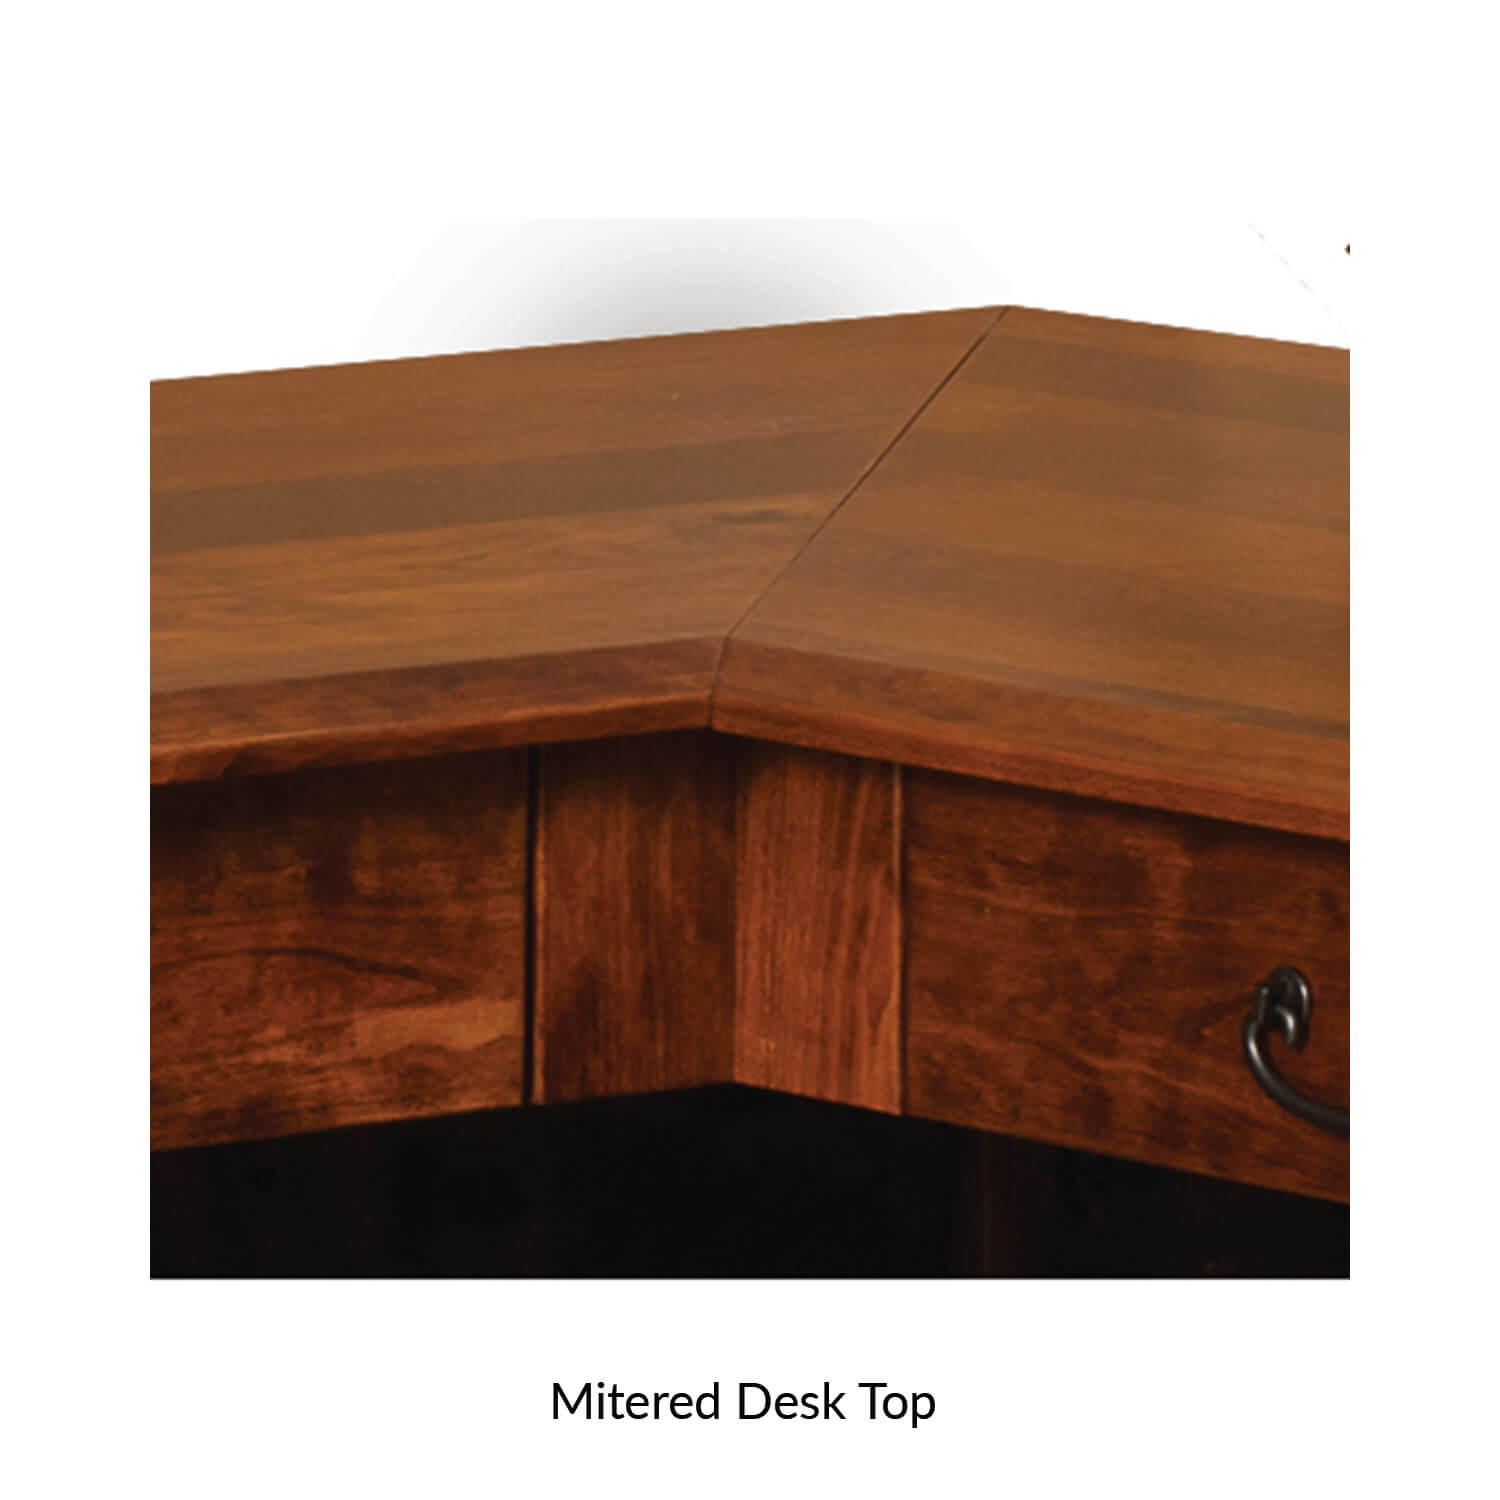 9.-mitered-desk-top.jpg